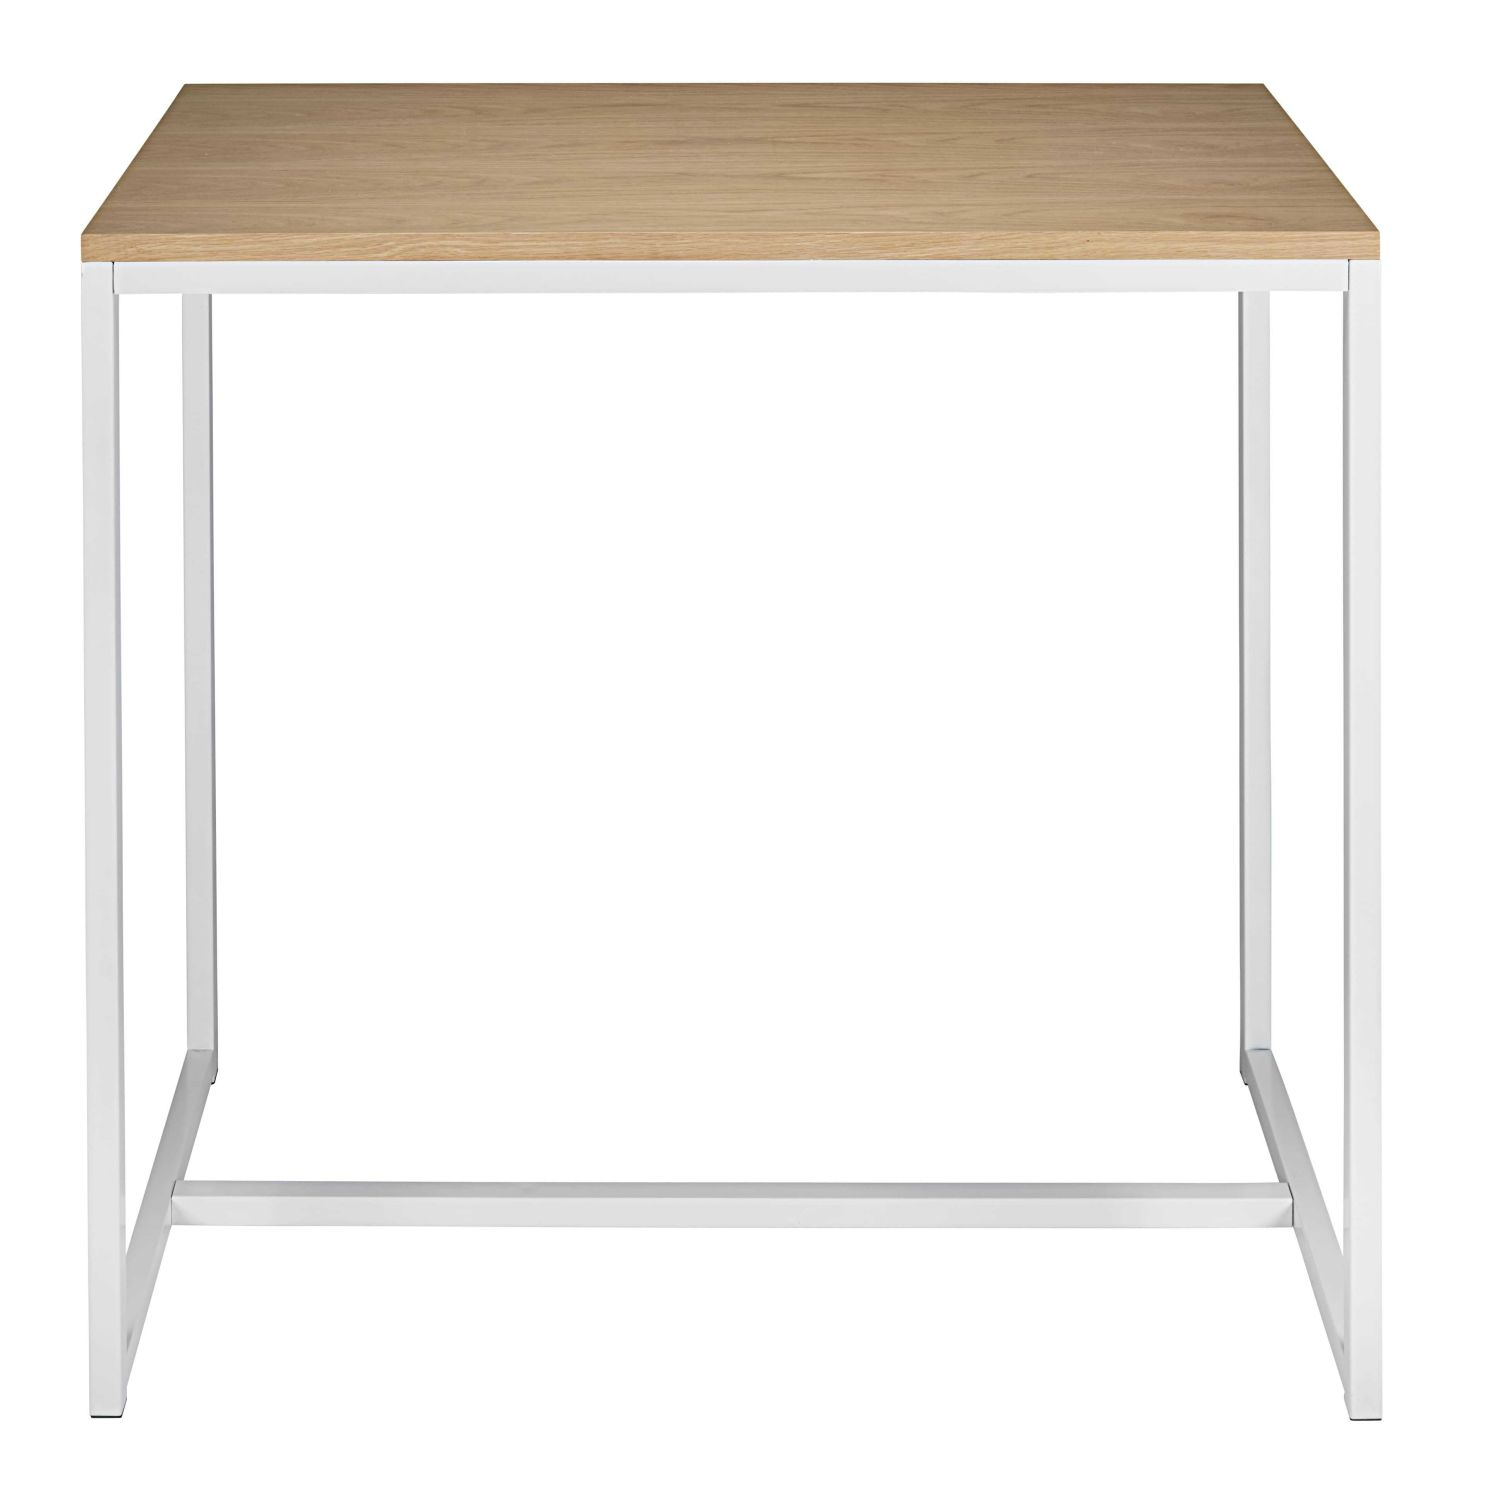 table manger haute en m tal blanc 4 6 personnes l120 maisons du monde. Black Bedroom Furniture Sets. Home Design Ideas